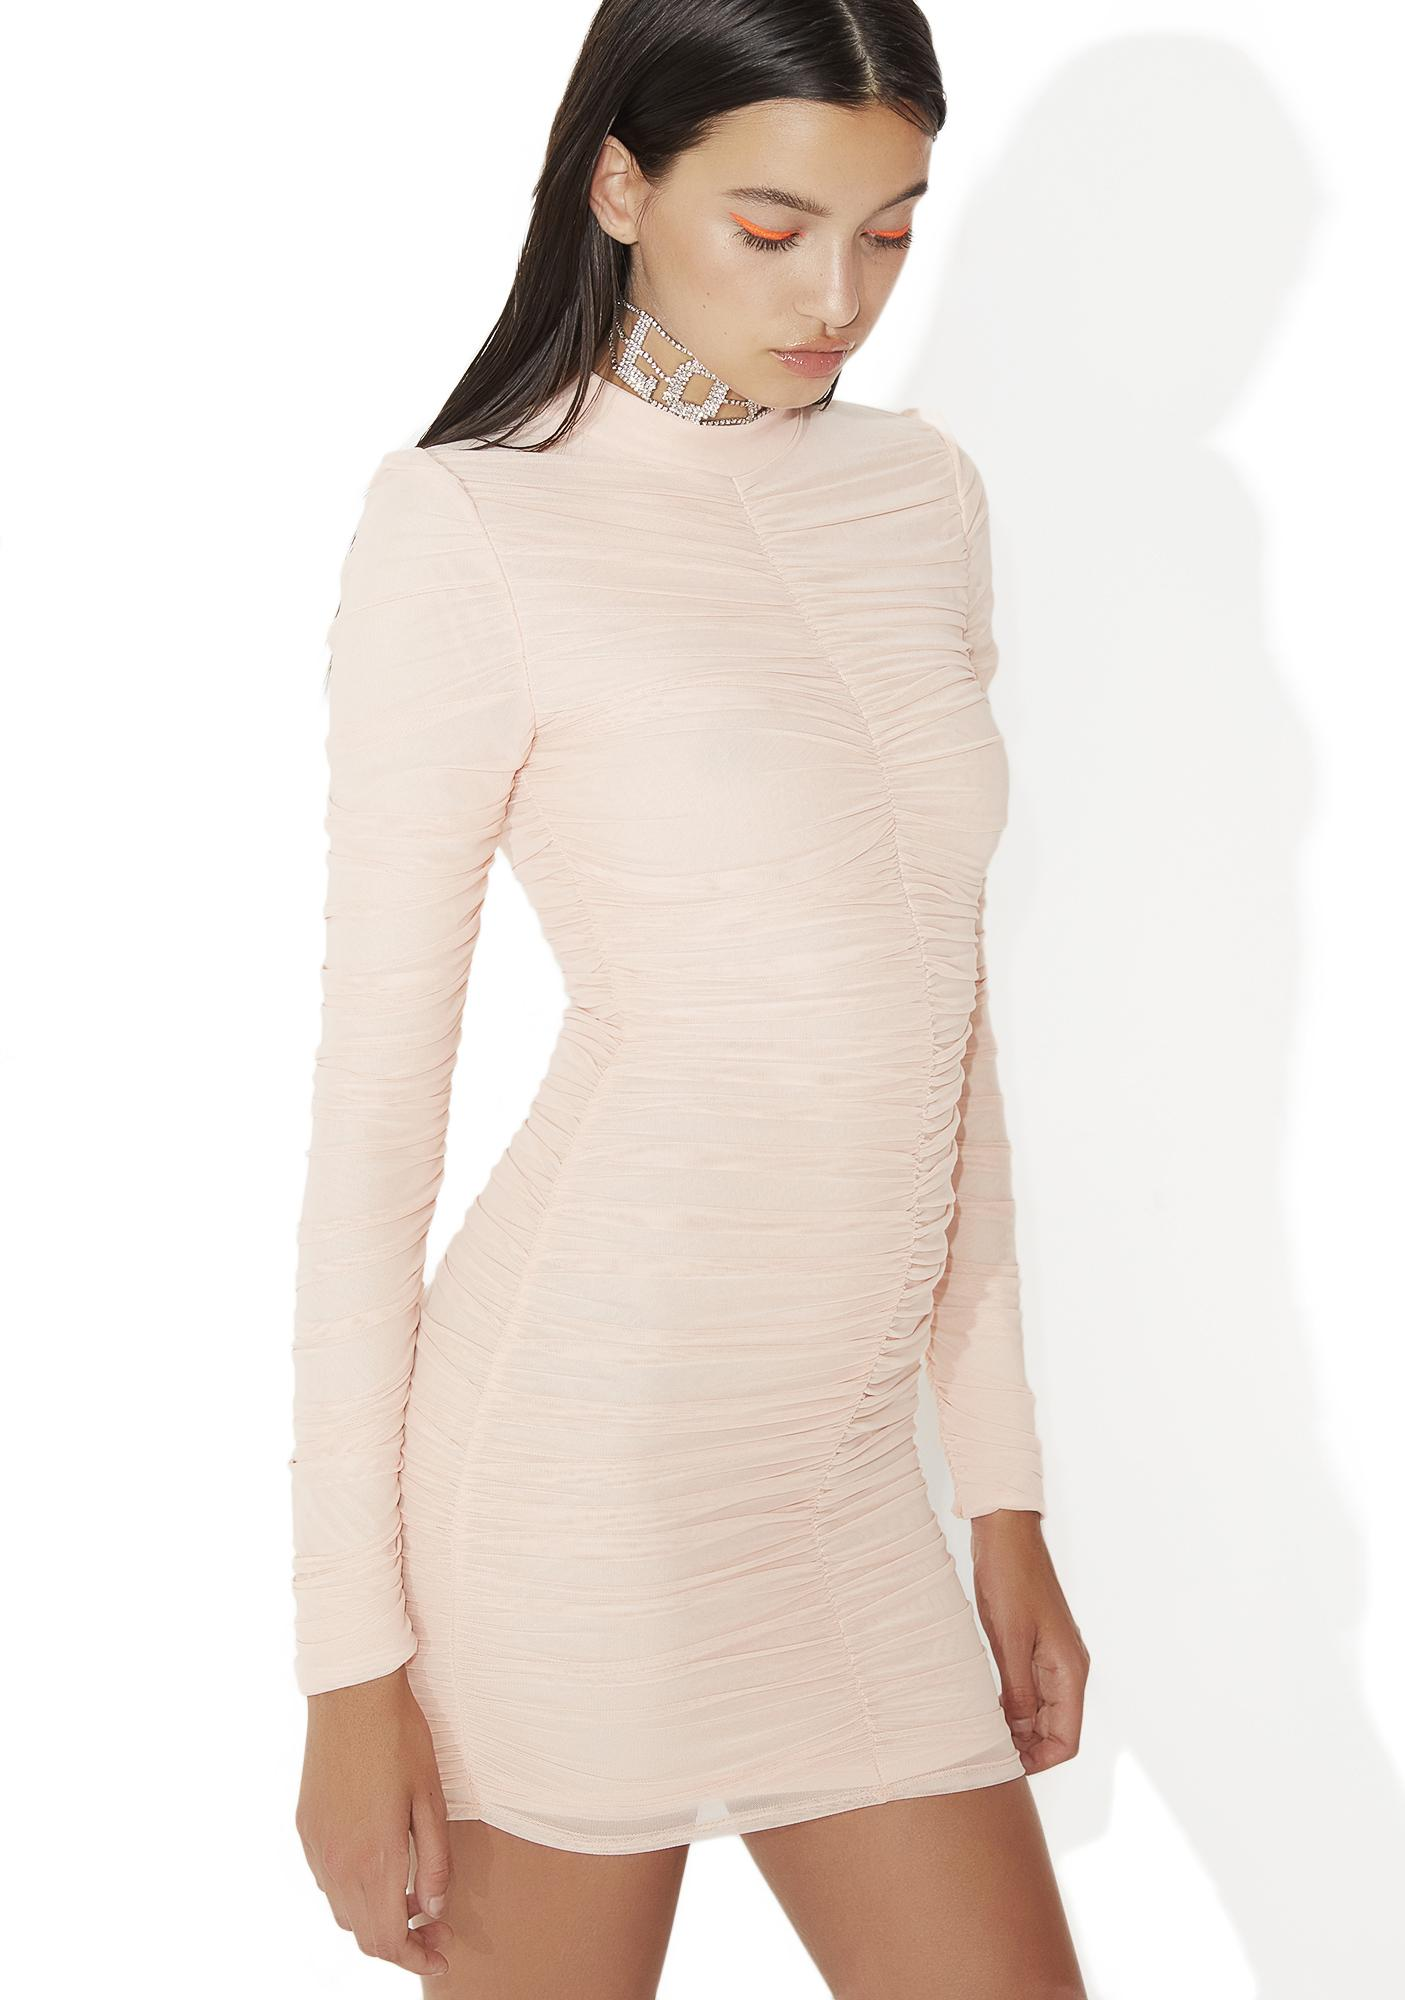 Flossin' On 'Em Bodycon Dress